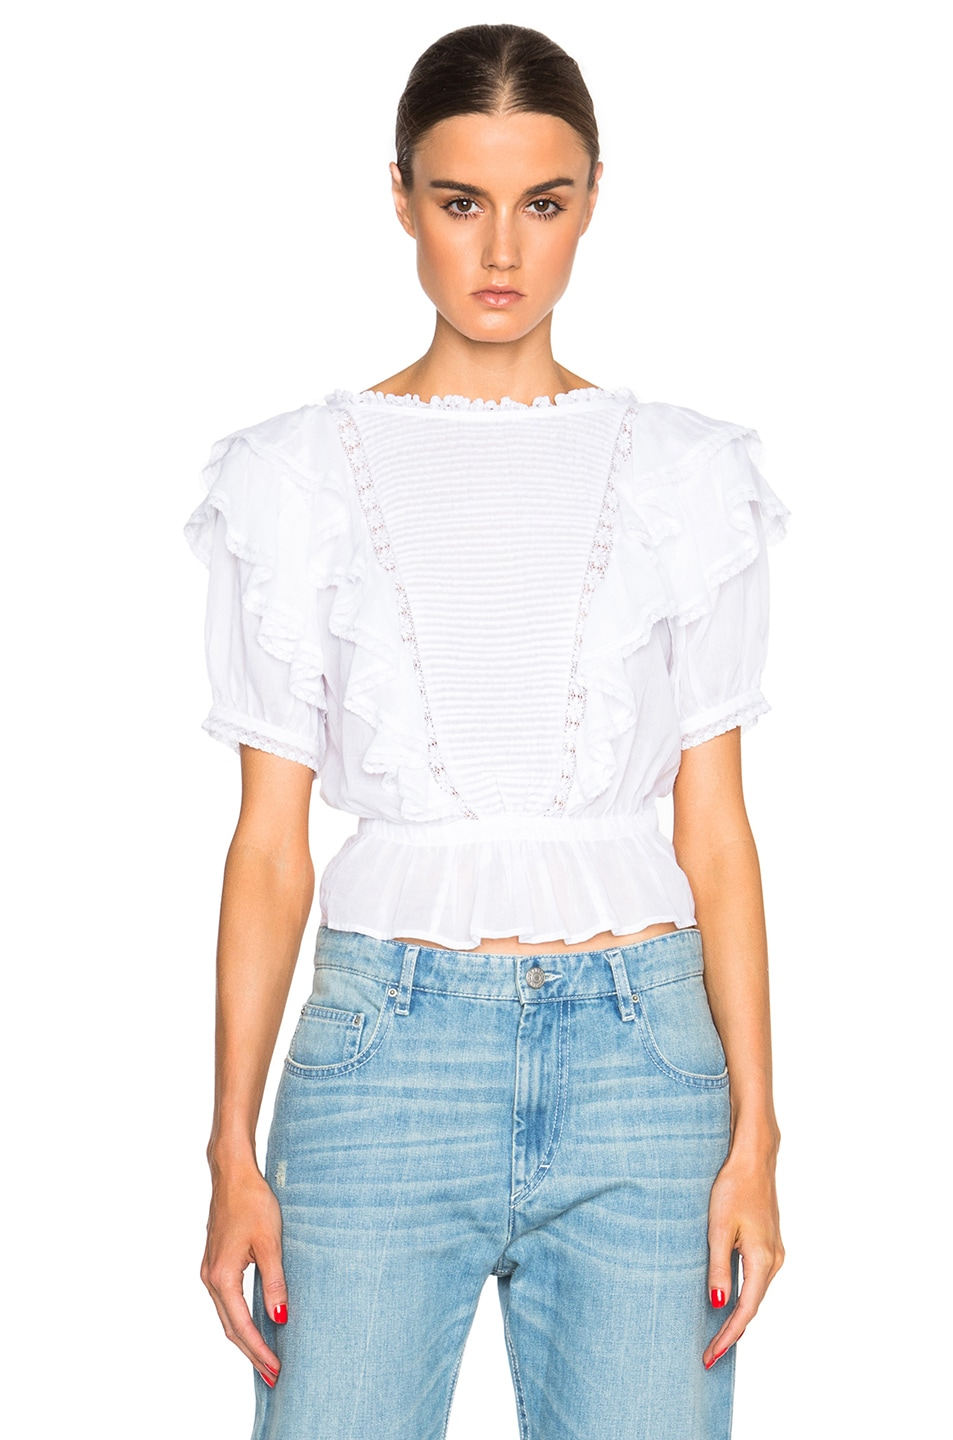 Isabel Marant Etoile Nathan Alice Items Top in White